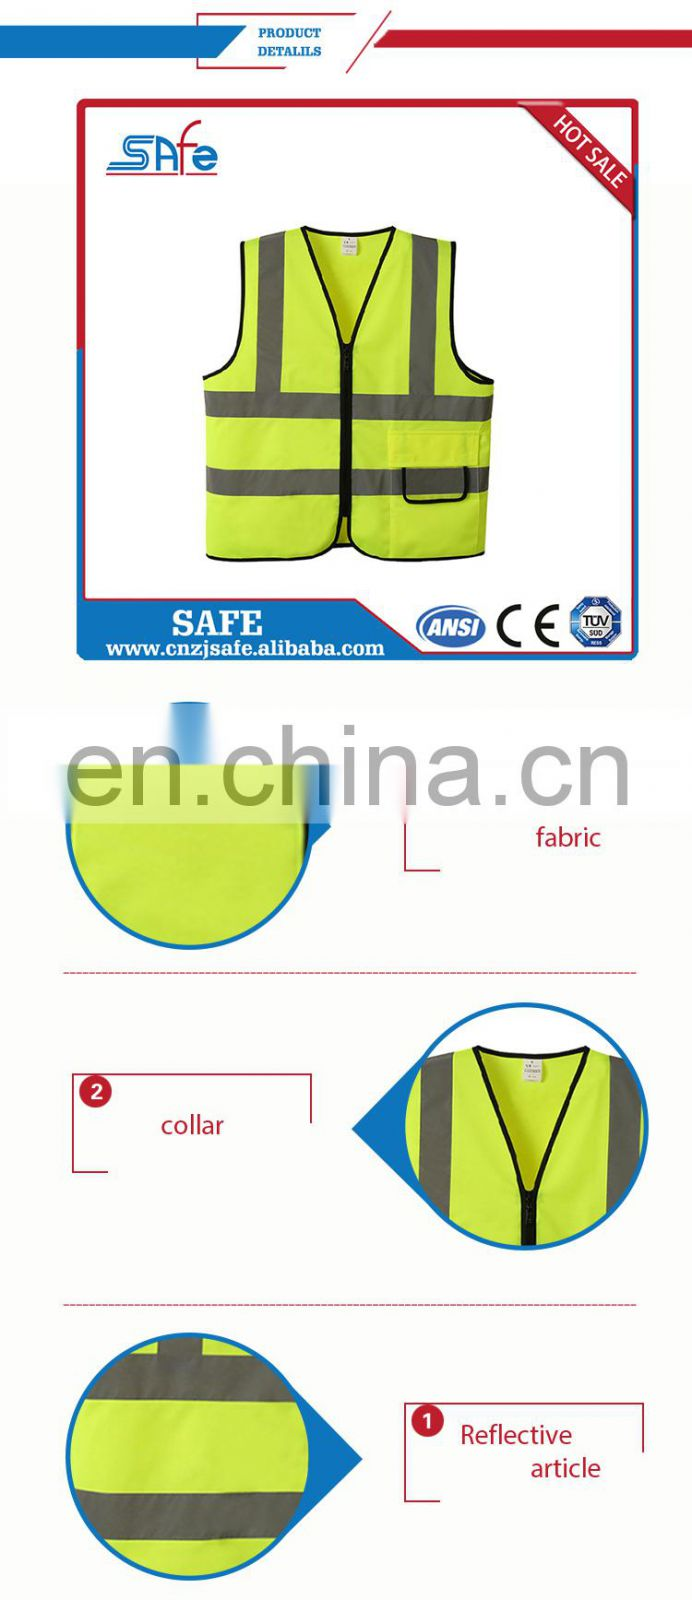 For road safety fabric for reflective safety CE high visibility yellow vests